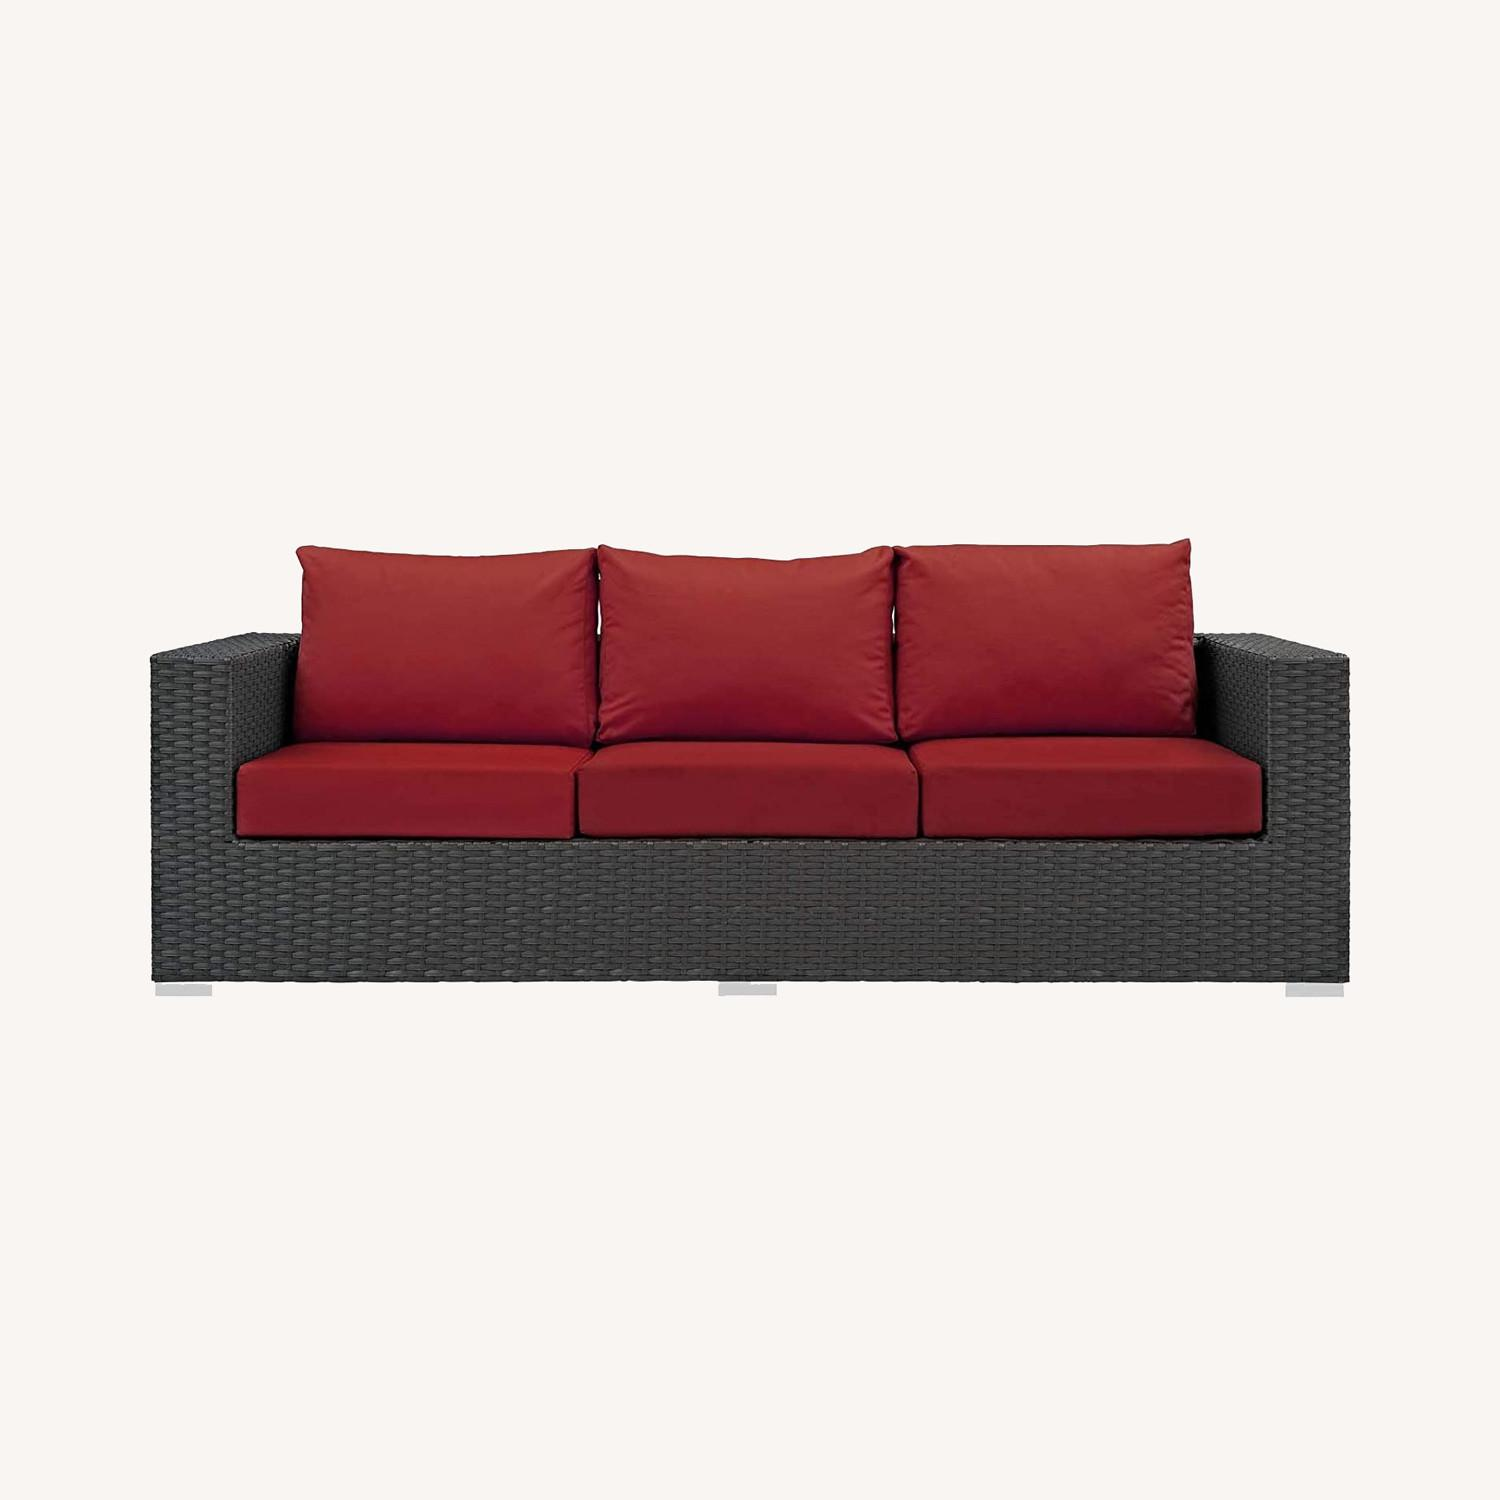 Outdoor Sofa In Rattan Weave Finish W/ Red Cushion - image-5